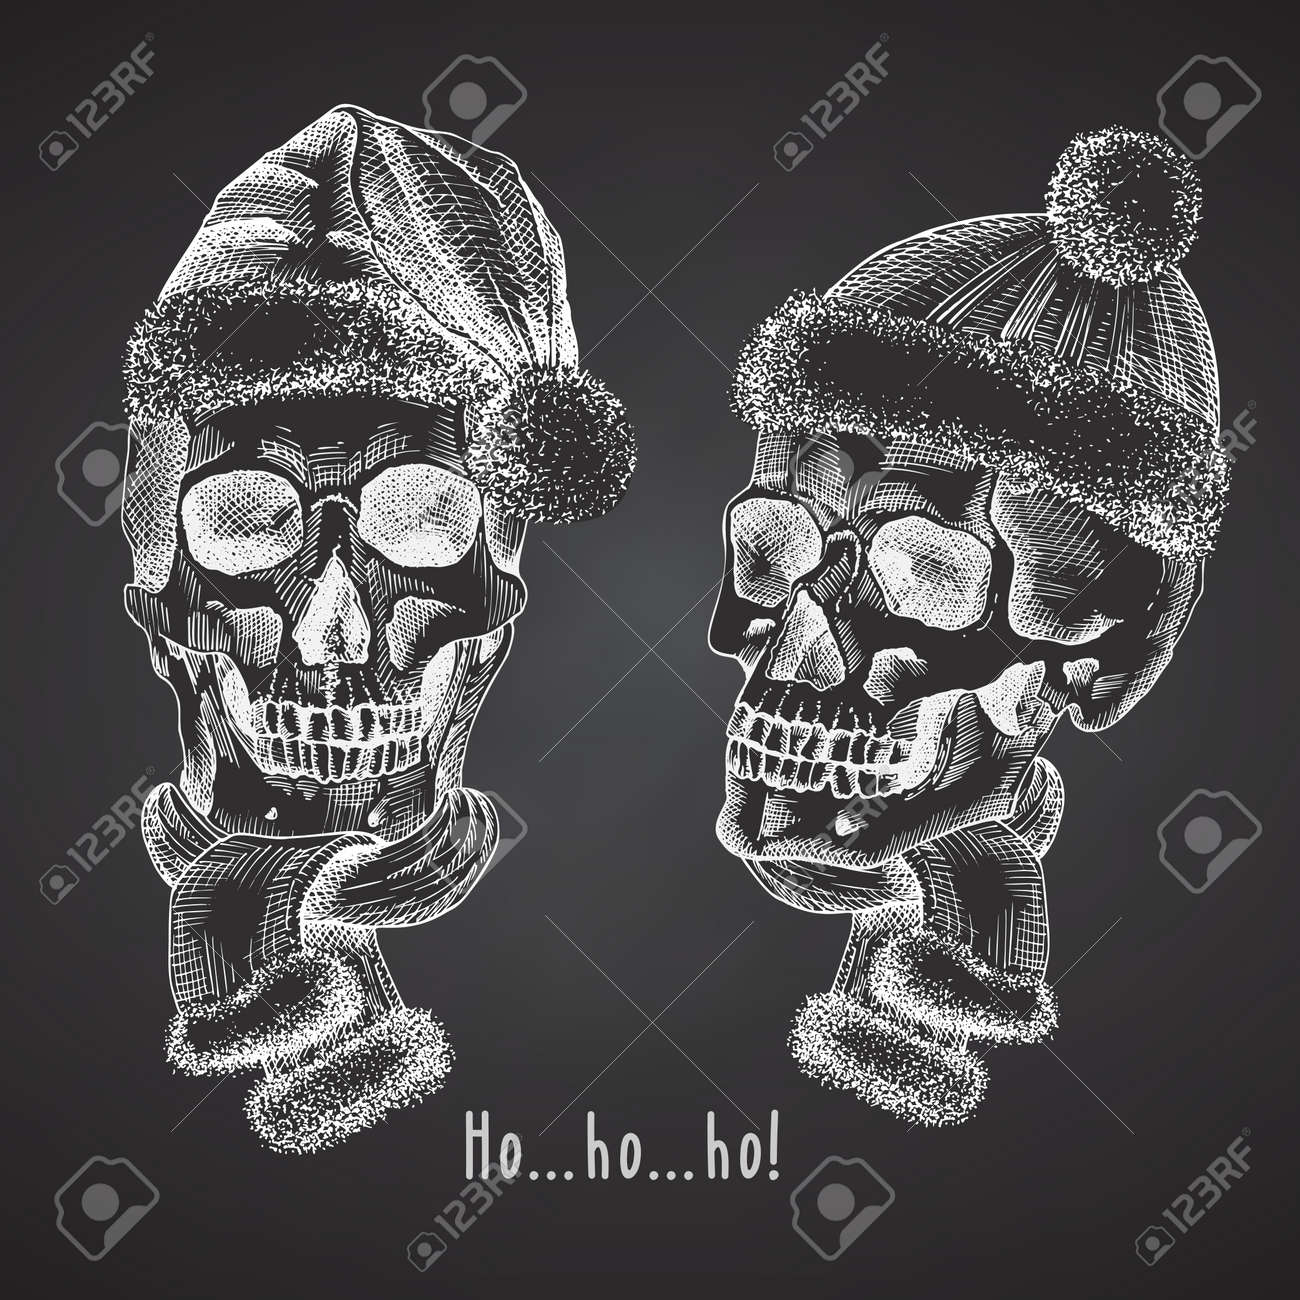 Set Hand drawn sketch human skull with santa hat and fur scarf. Chalk graphic Engraving art isolated on chalkboard background. Alternative Christmas and New Year vintage style. Vector - 160989612